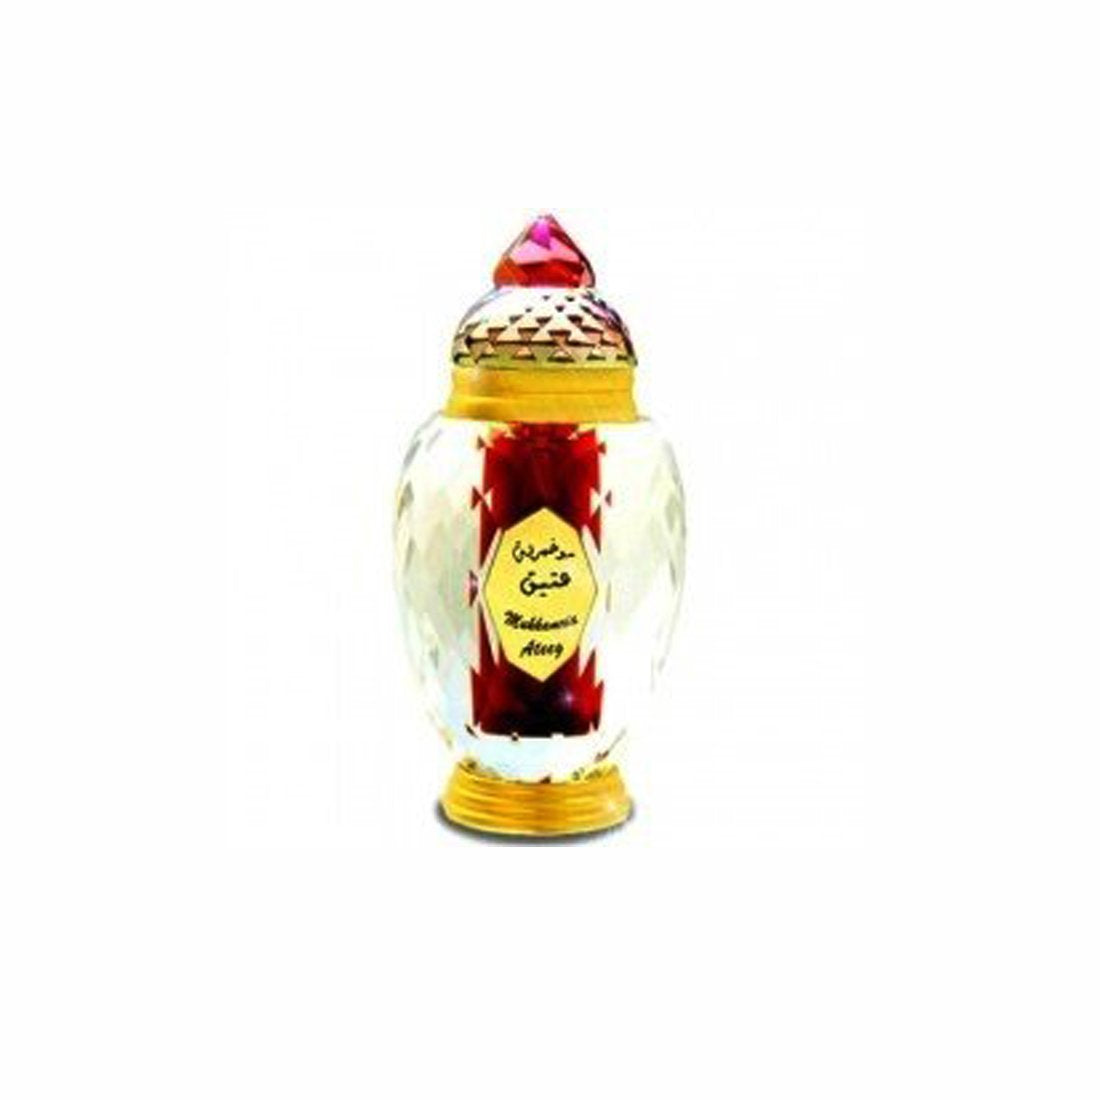 Al Haramain Mukhamria Ateeq Attar - 12 ml